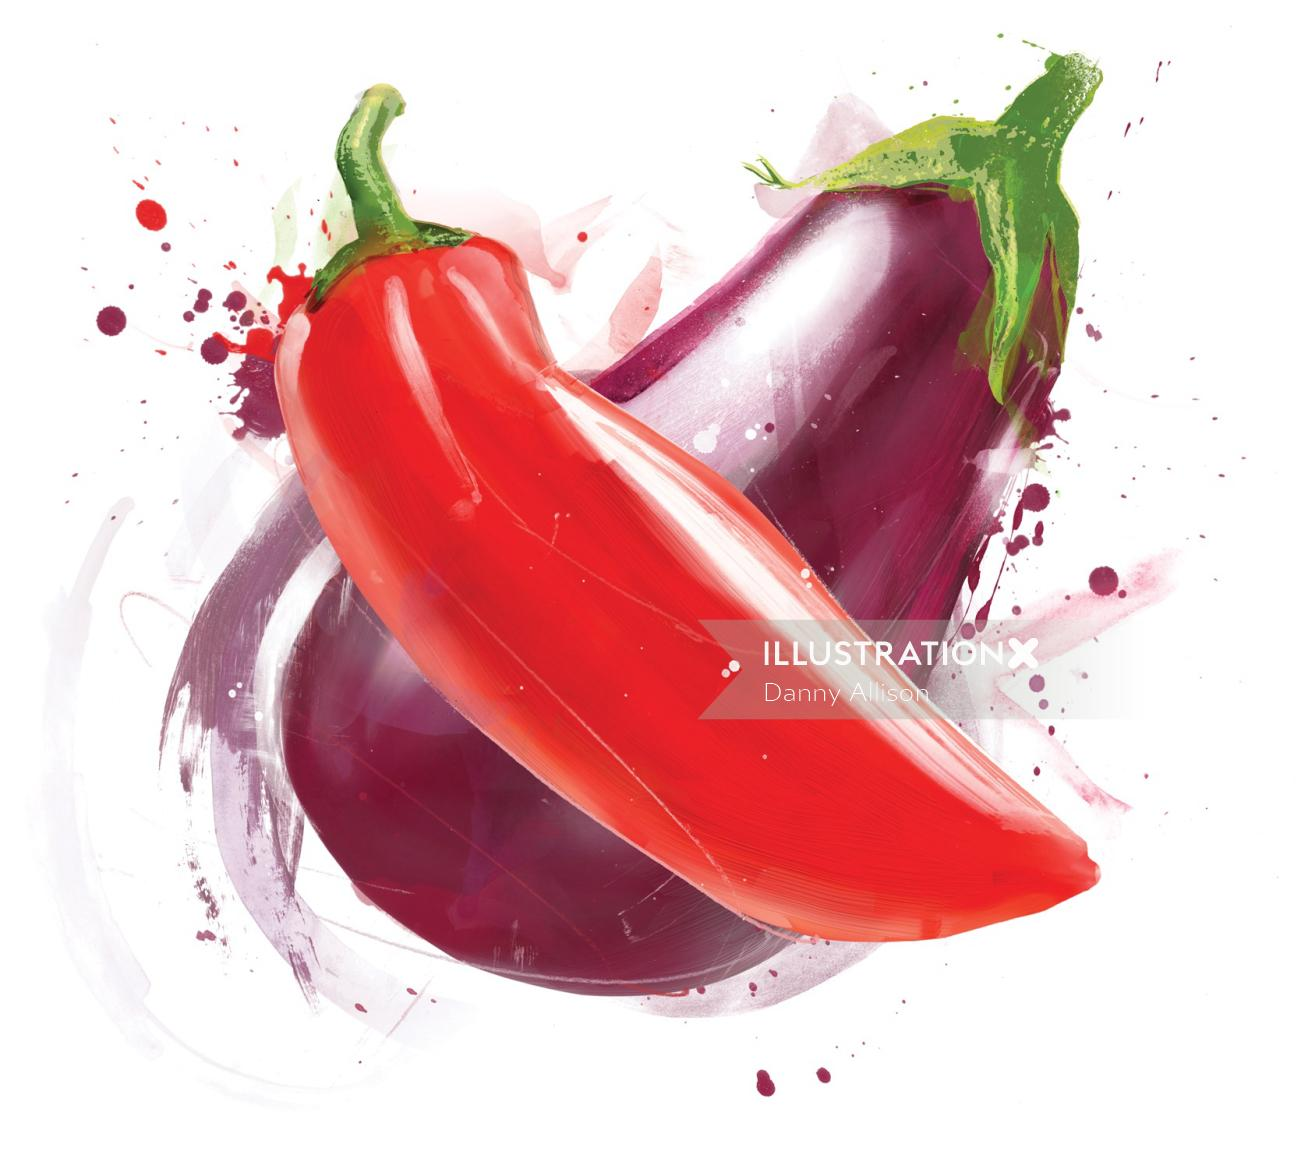 Water color of Eggplant and Red Mirchi